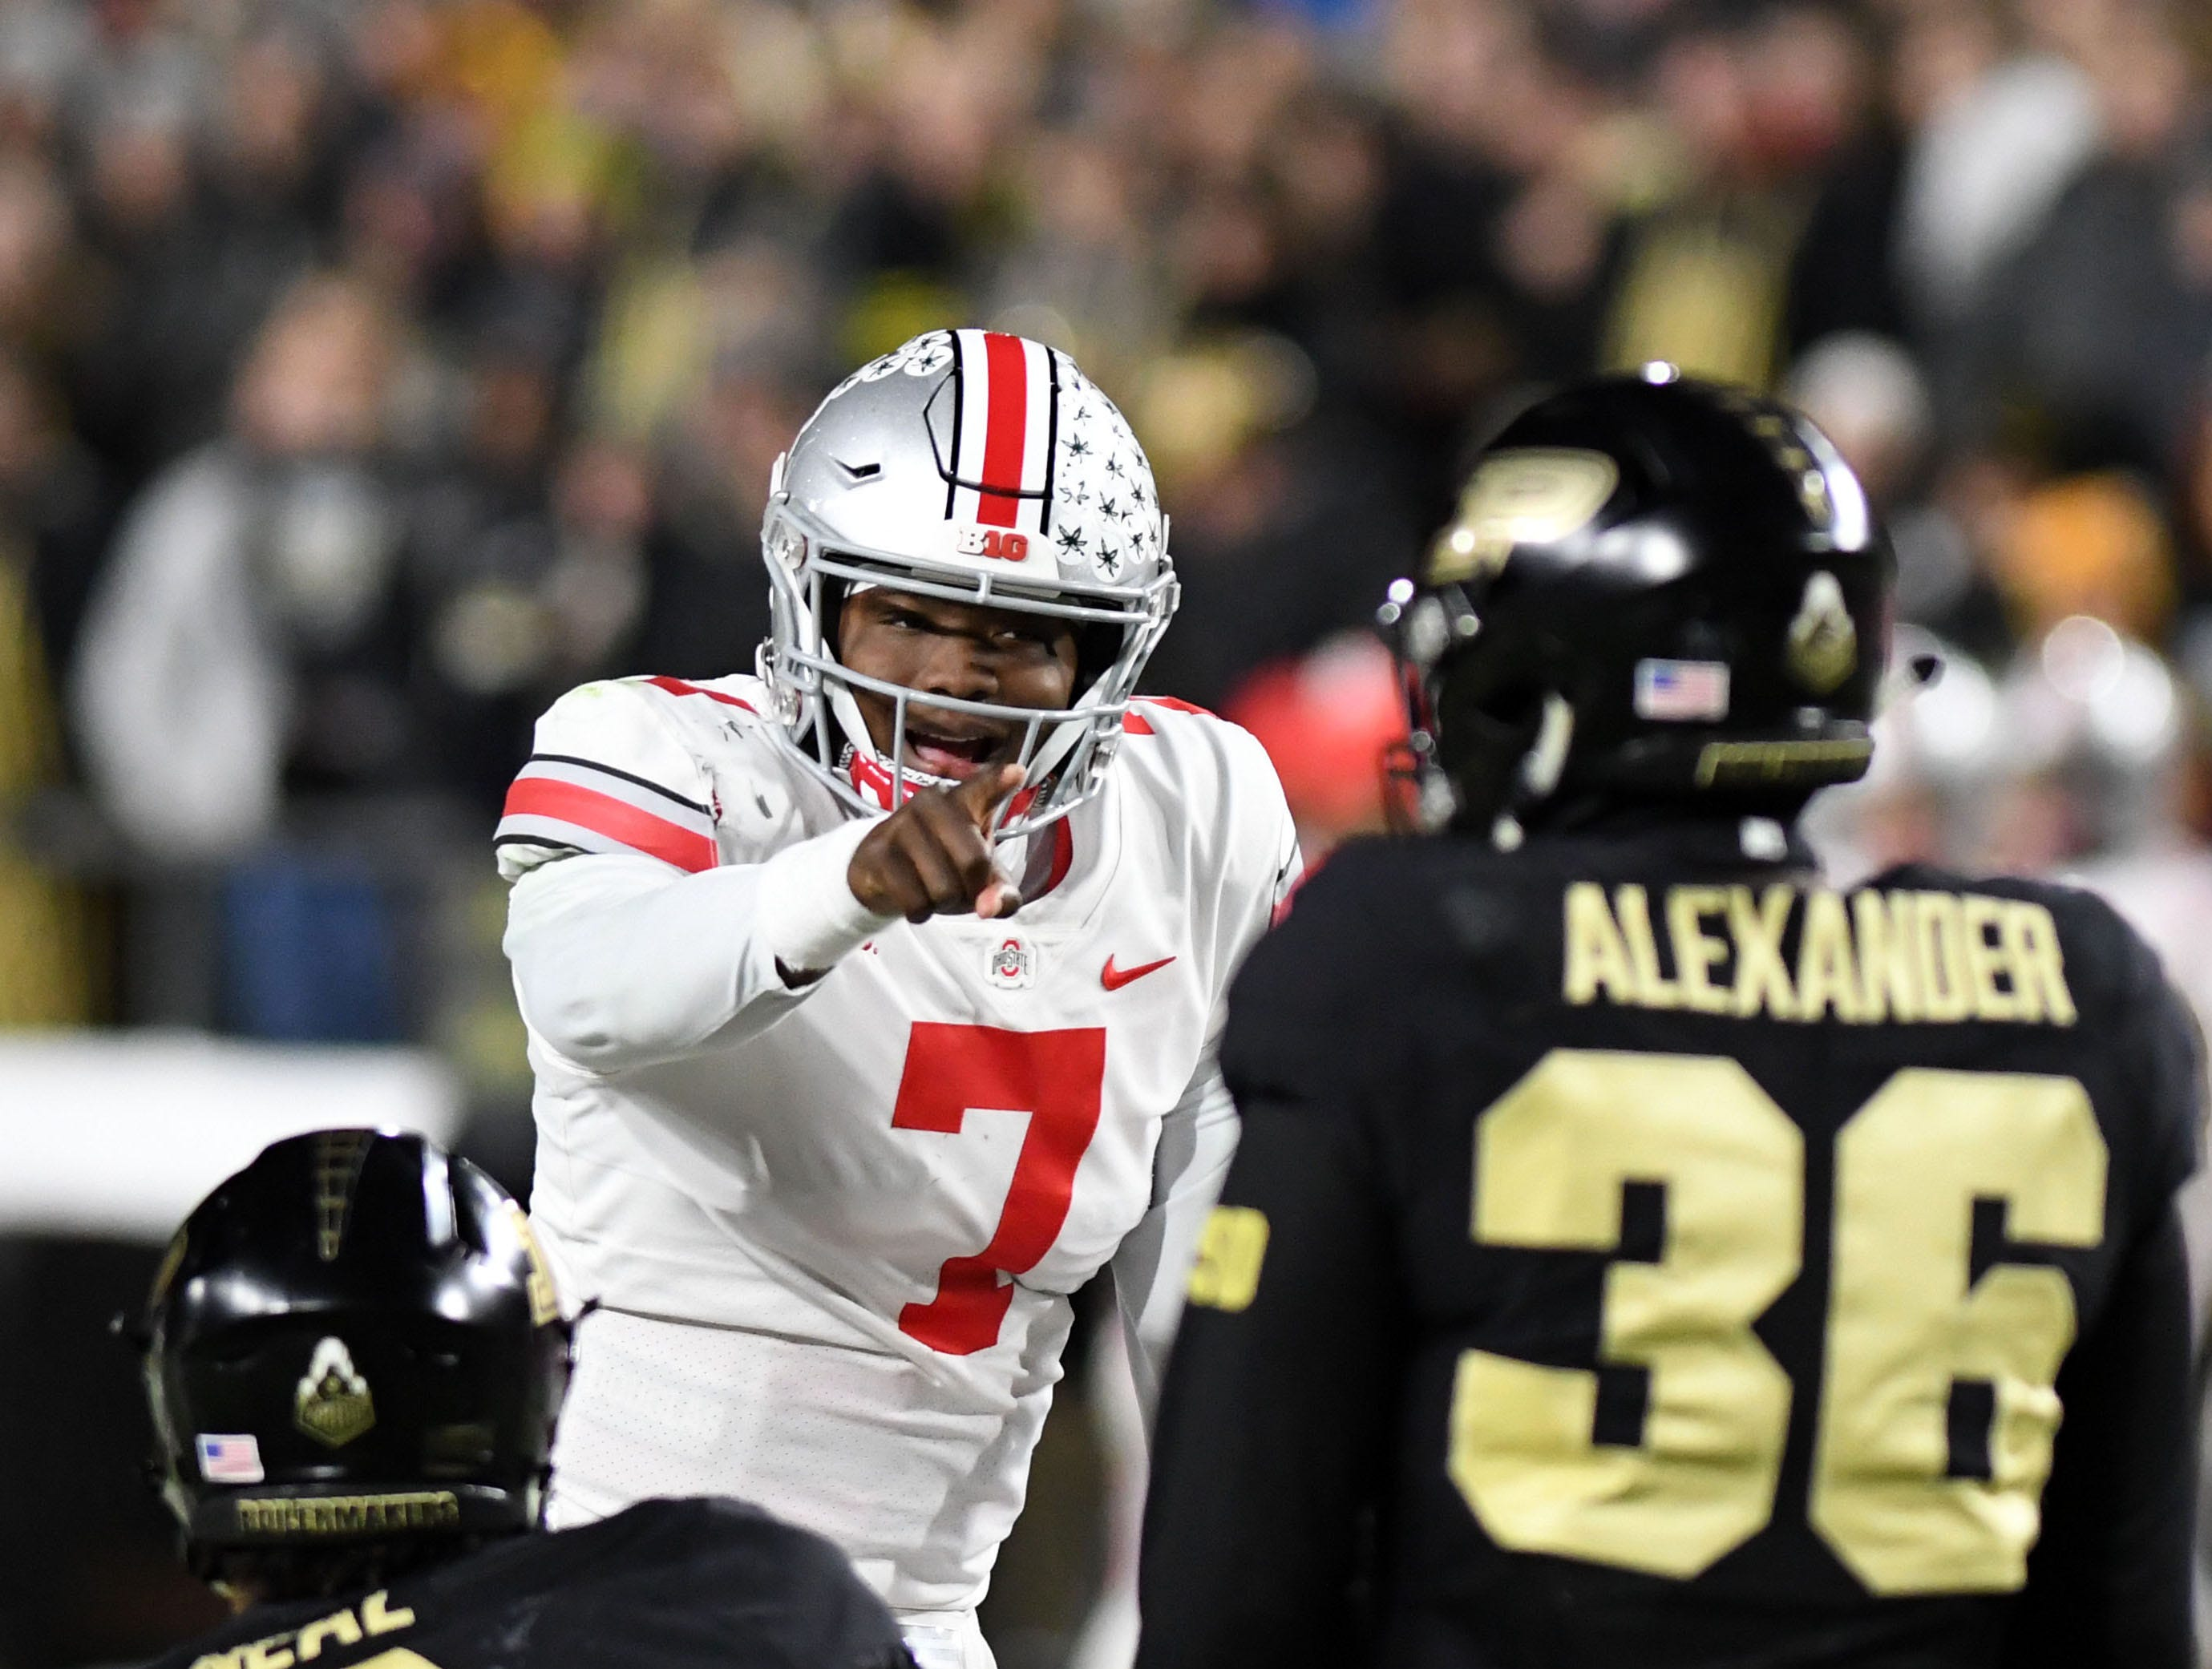 Oct 20, 2018; West Lafayette, IN, USA; Ohio State Buckeye quarterback Dwayne Haskins Jr. (7) calls a play at the line in the first half against the Purdue Boilermakers at Ross-Ade Stadium. Mandatory Credit: Thomas J. Russo-USA TODAY Sports